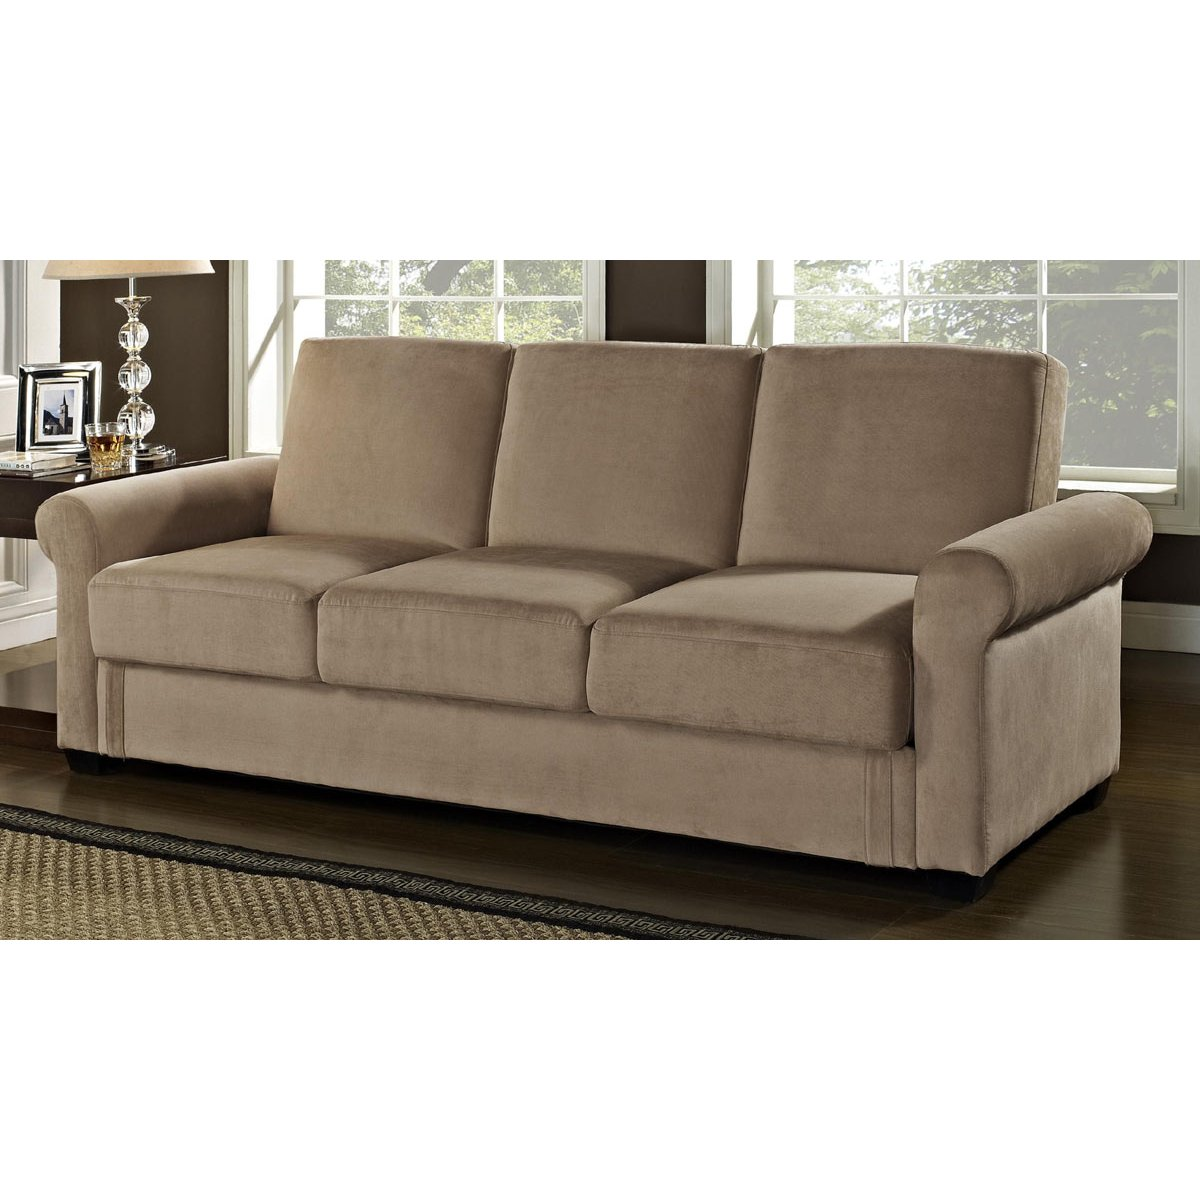 Thomas 87 Brown Upholstered 2 Piece Convertible Sofa  : Thomas 87 Brown Upholstered 2 Piece Convertible Sofa Sleeper rcwilley image1800 from www.rcwilley.com size 1200 x 1200 jpeg 117kB